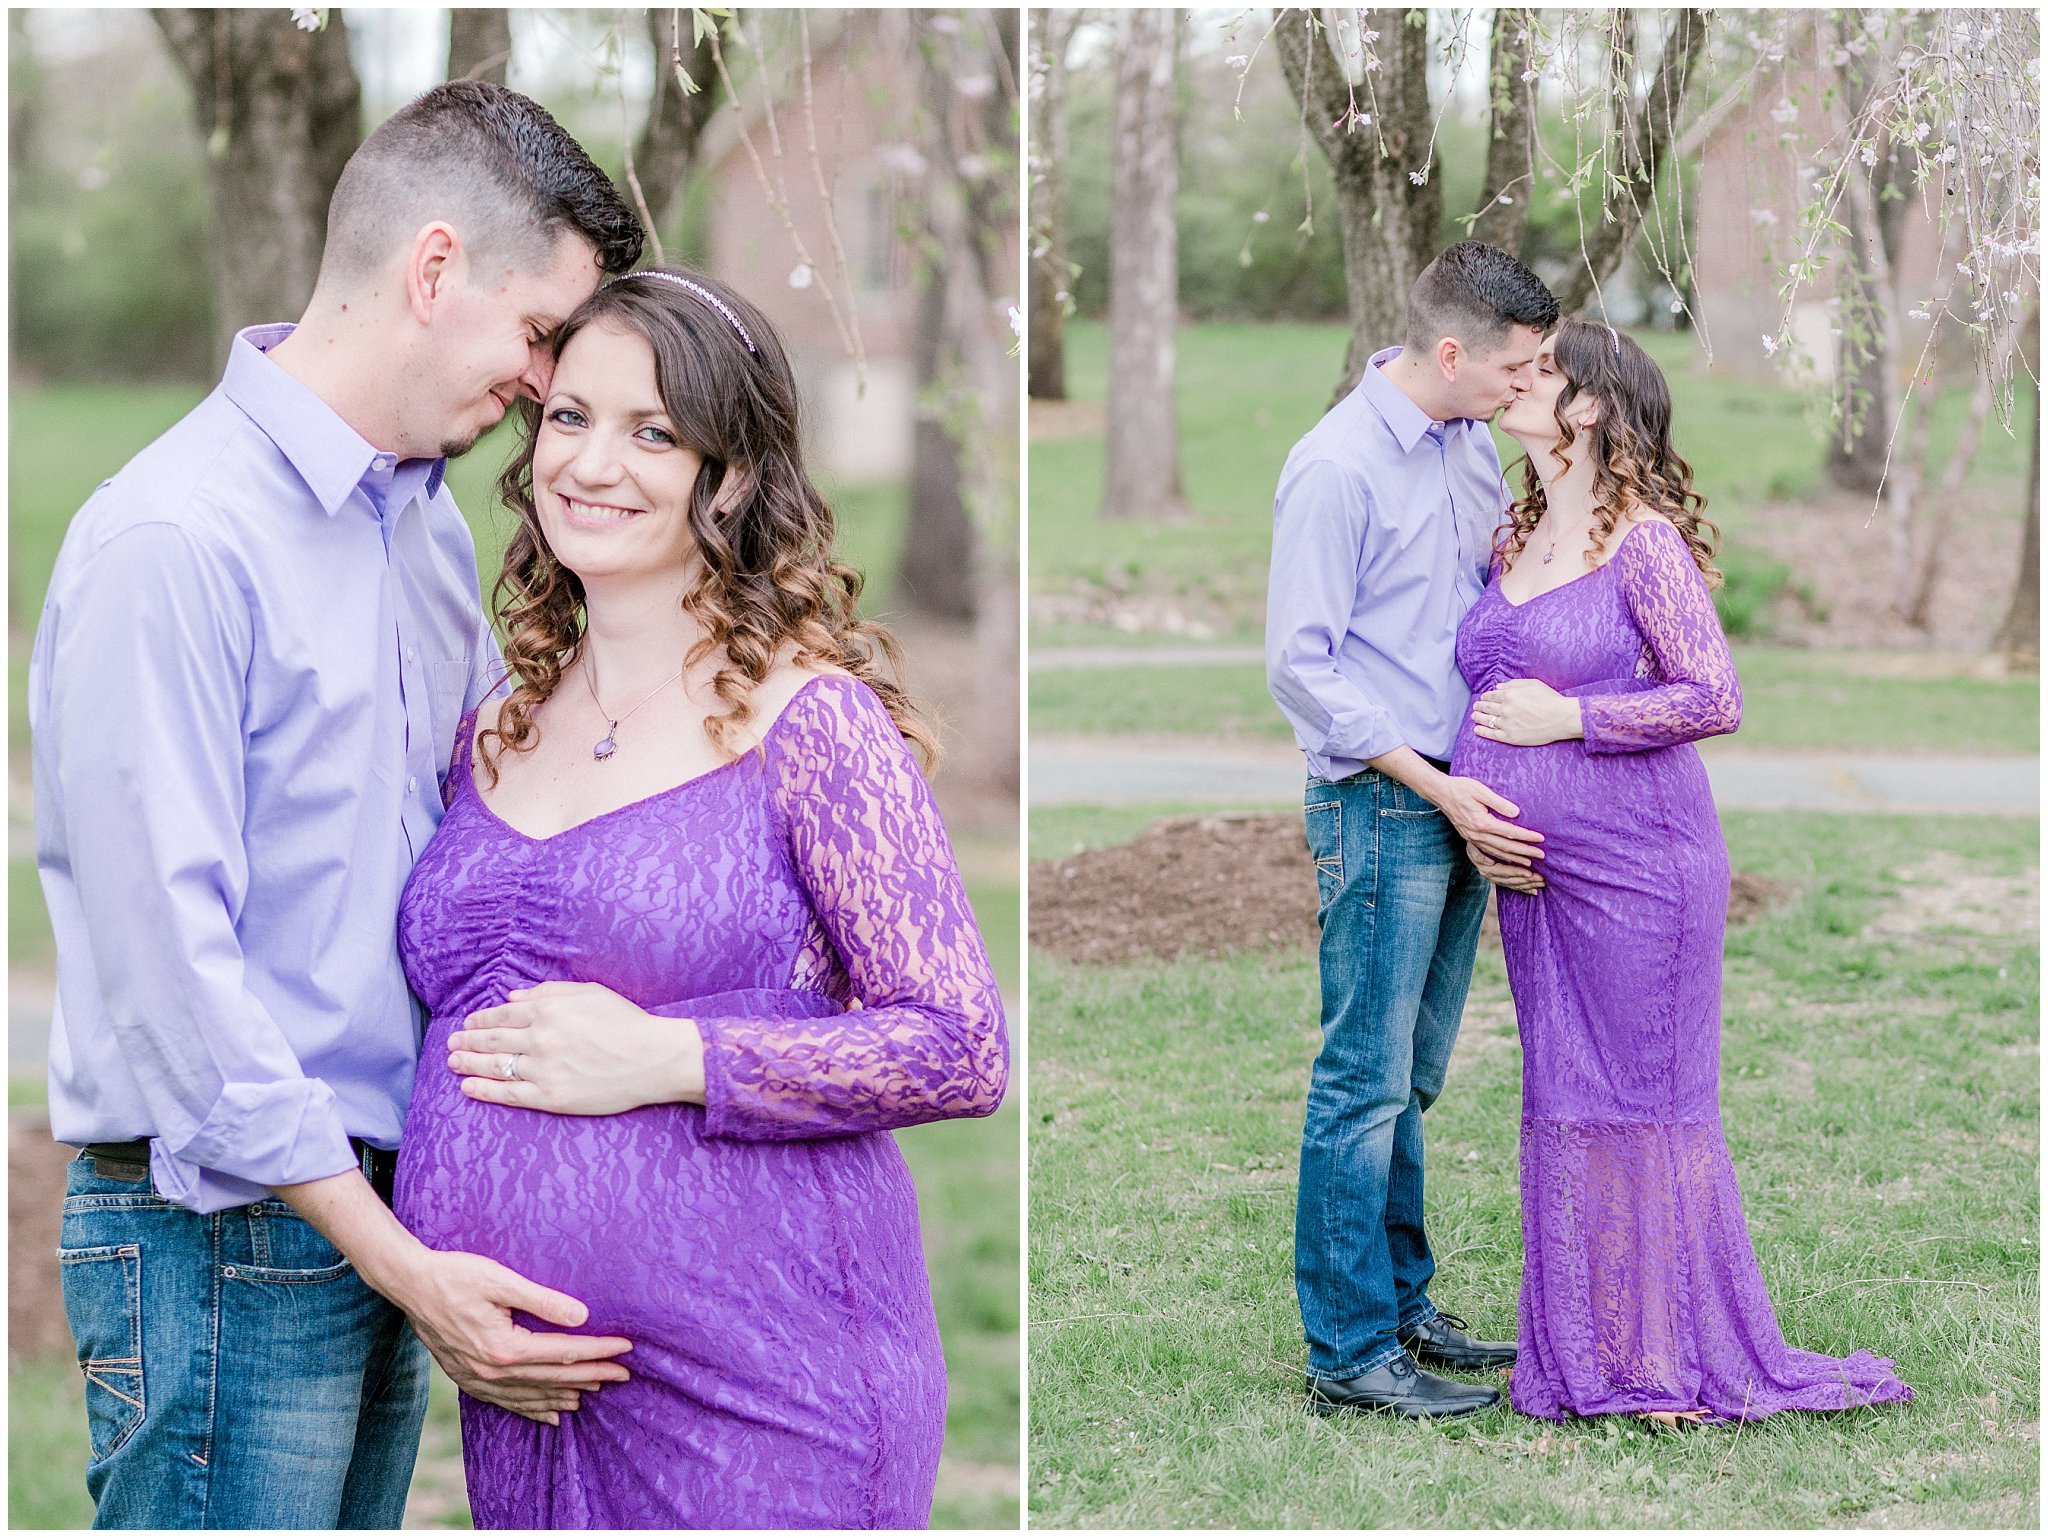 alburtis lockridge blue bonnet purple inspried maternity and family session pennsylvania wedding and lifestyle photographer (8).jpg